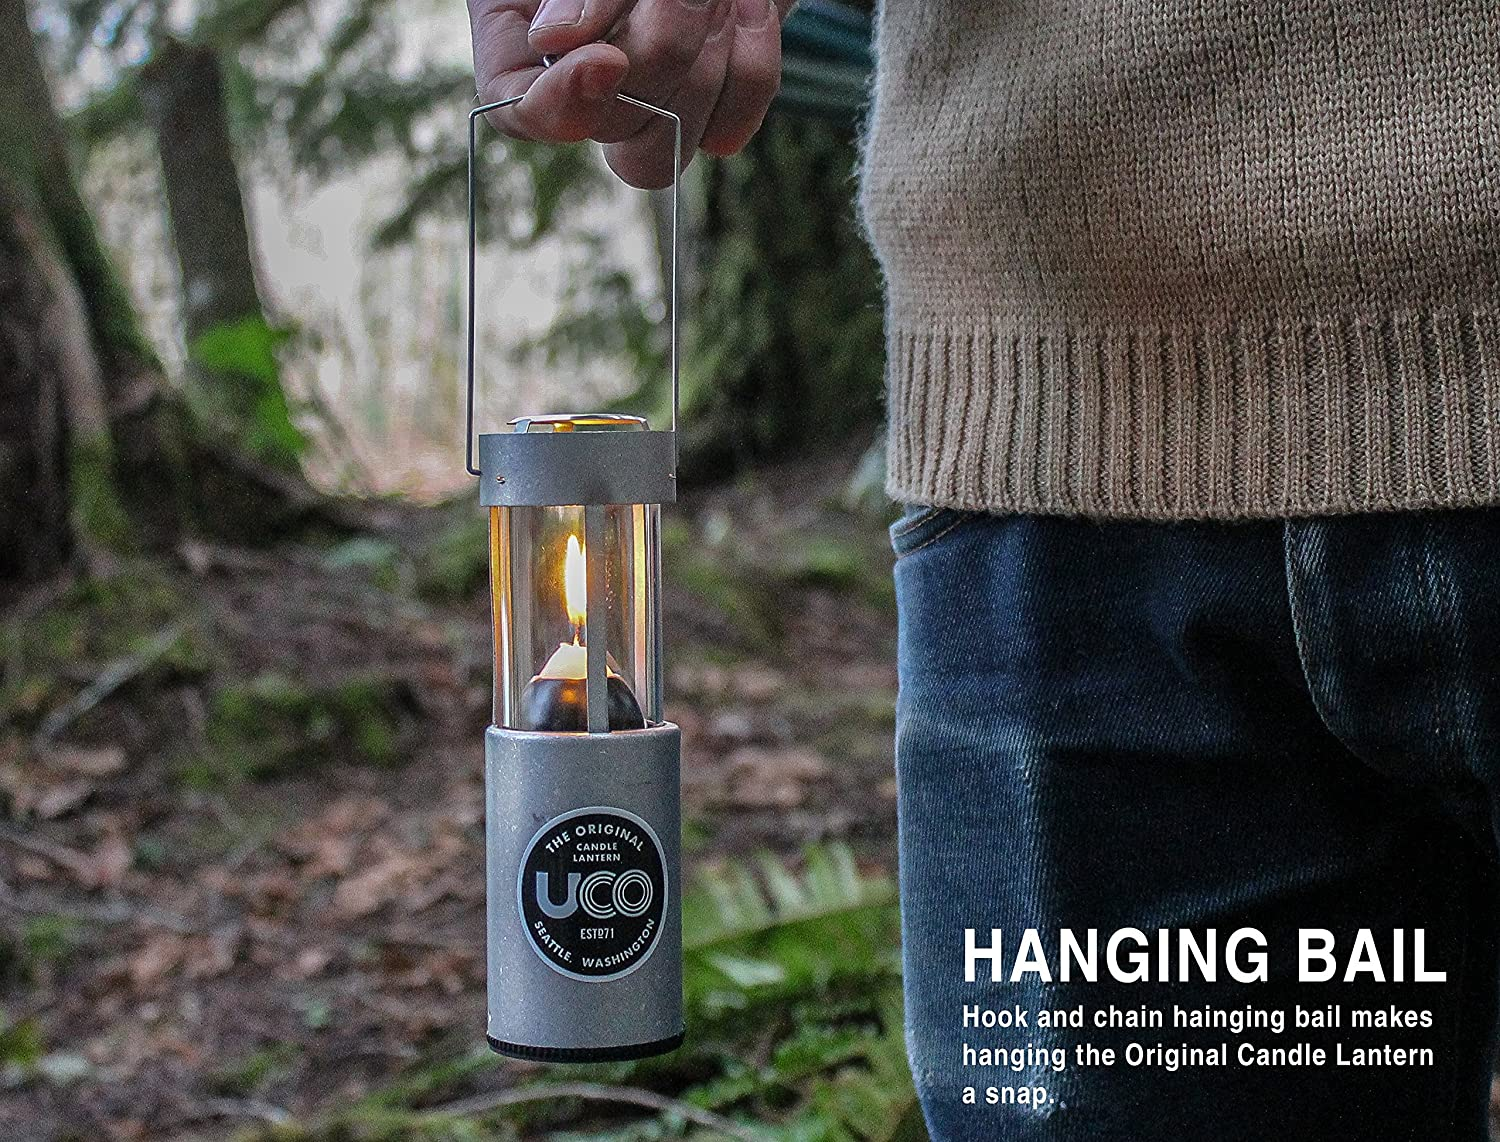 UCO Original Candle Lantern Value Pack with 3 Candles and Storage Bag, Aluminum, One Size (L-A-VPUCO) : Candle Camping Lanterns : Sports & Outdoors